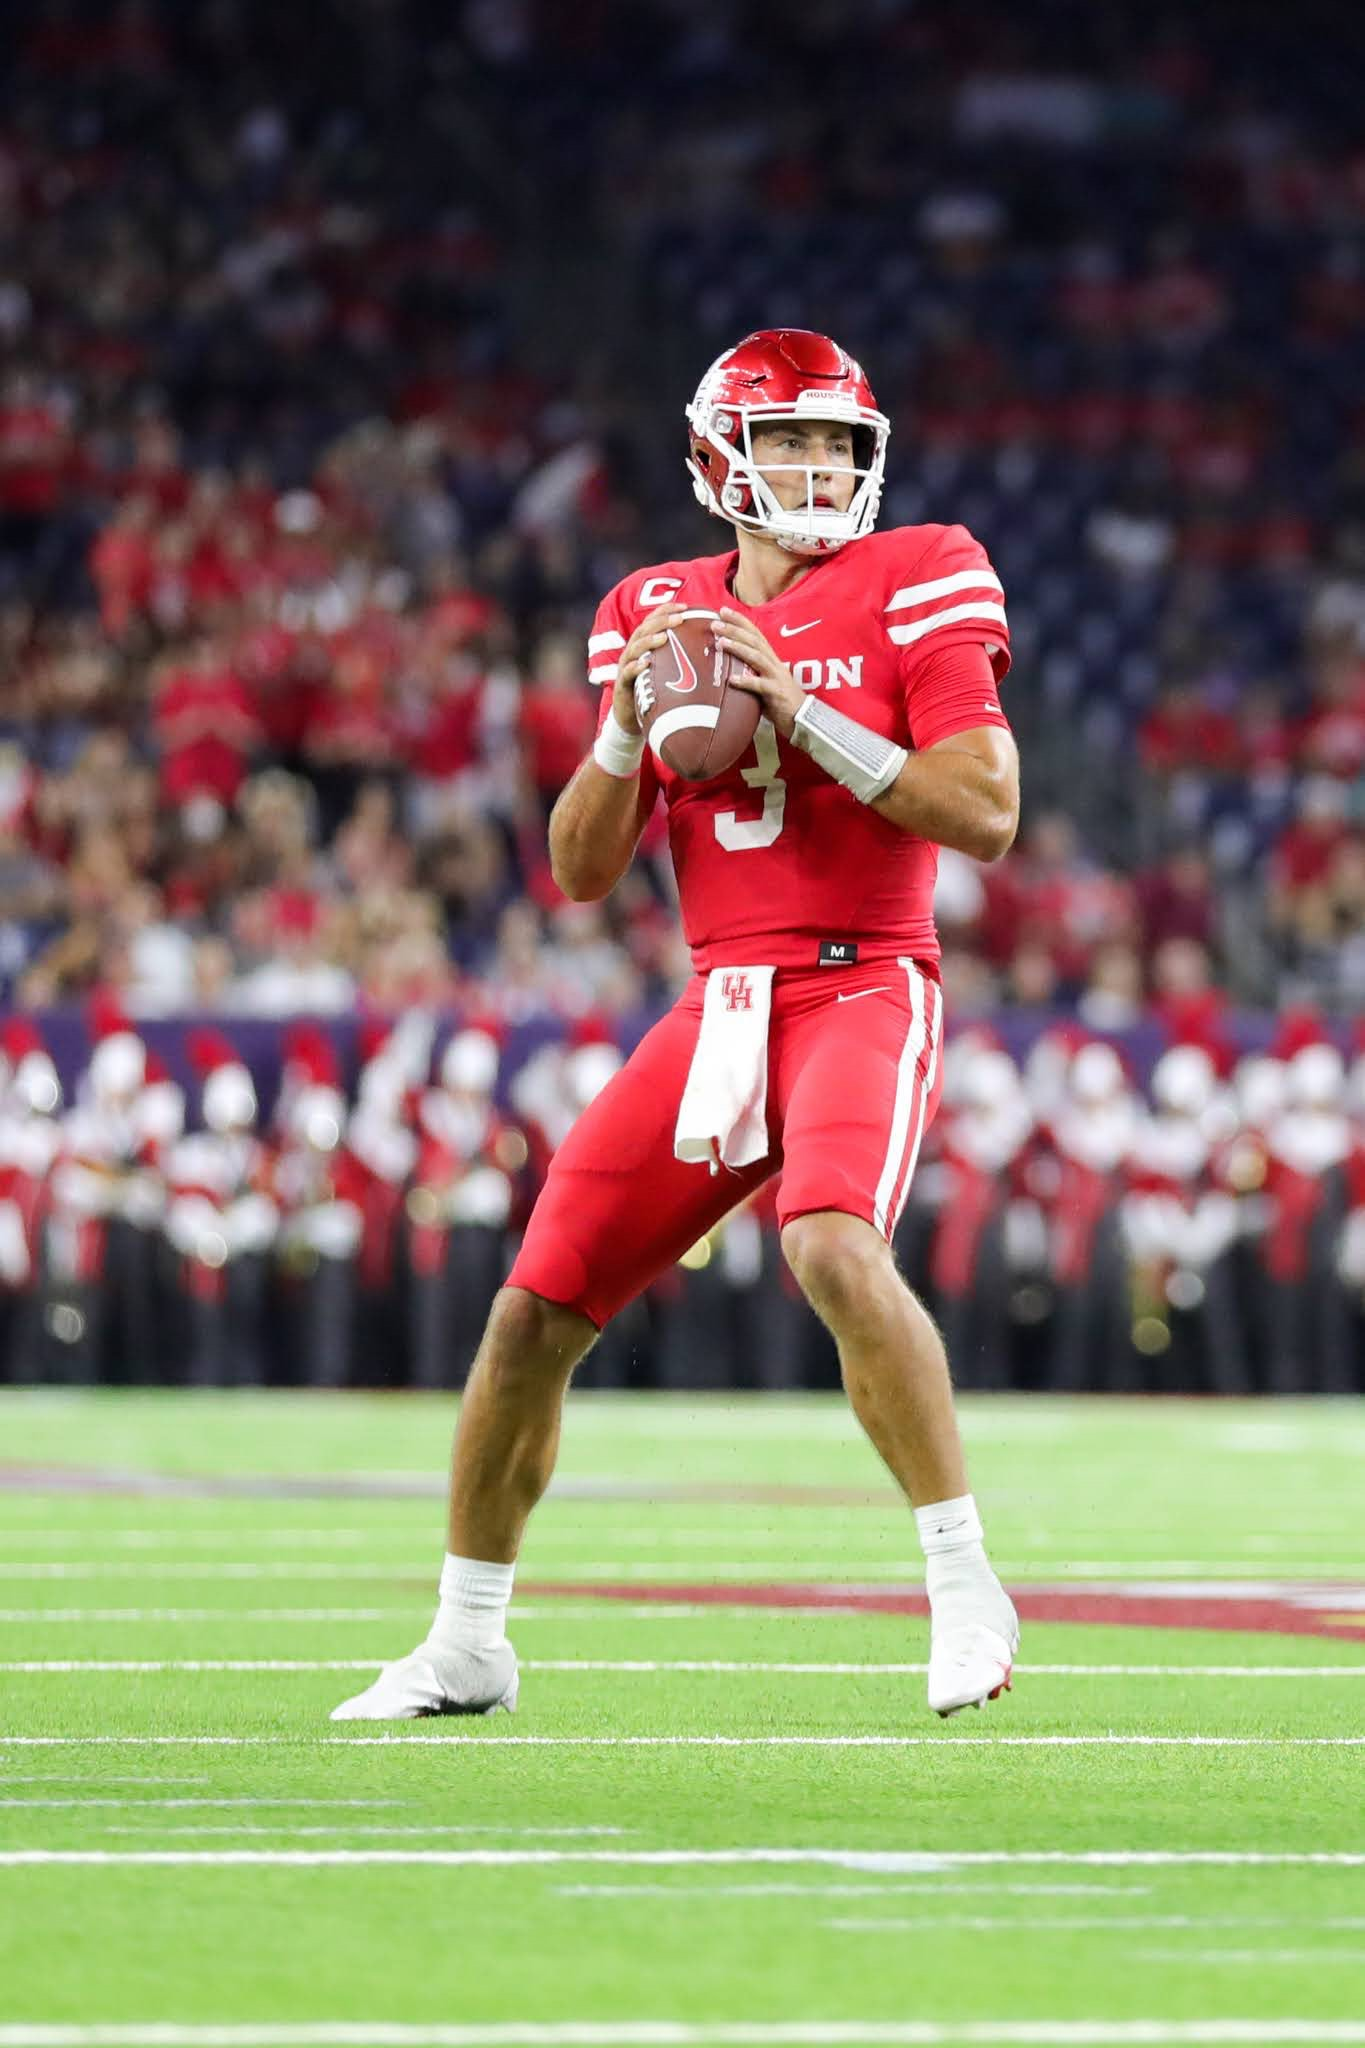 'One of the worst halves I've ever been a part': 2nd-half woes doom Coogs over Big 12's Red Raiders